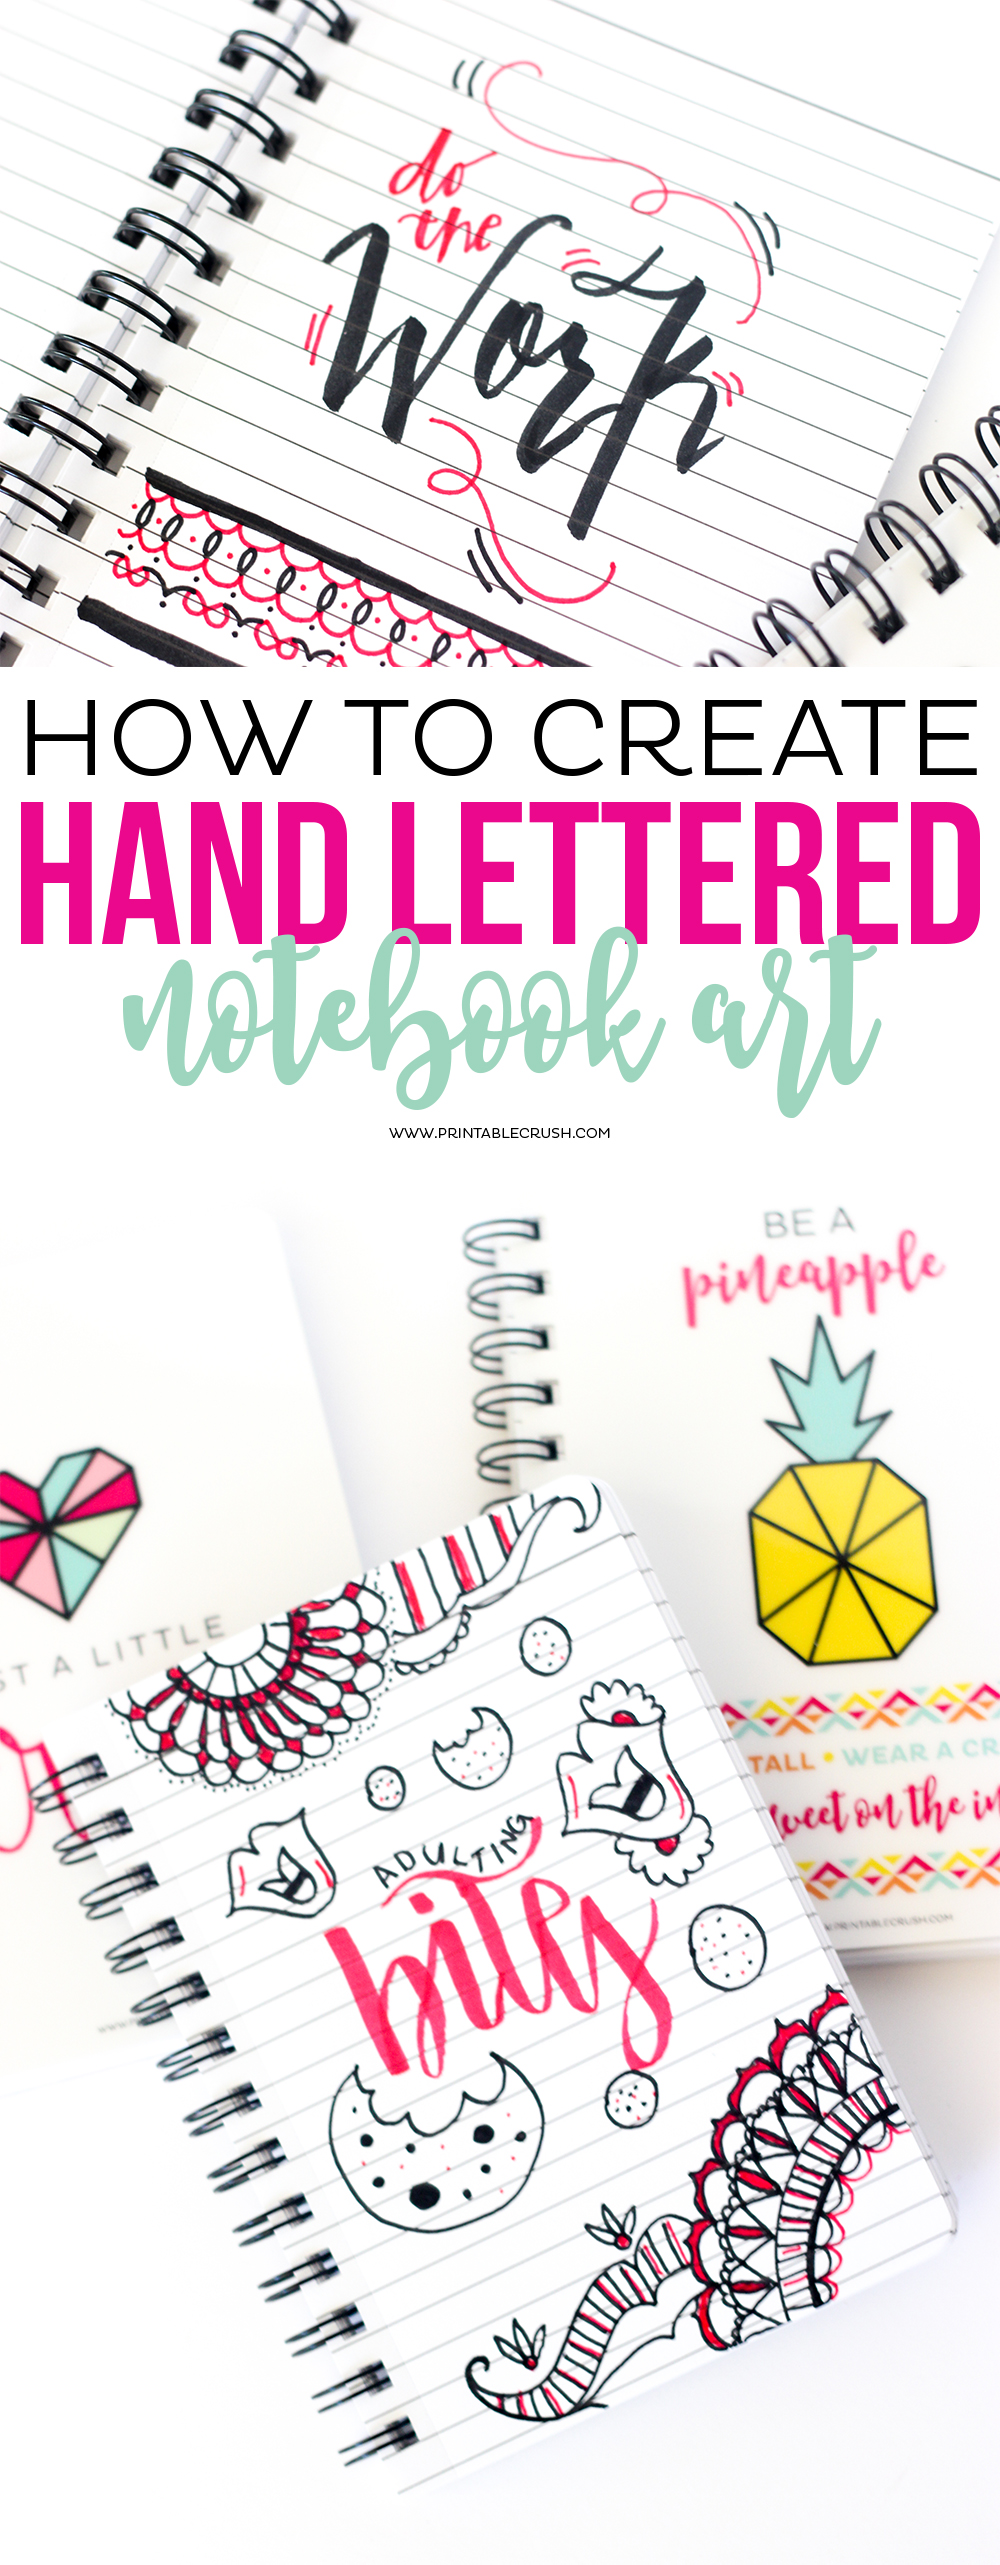 How To Create Hand Lettered Notebook Art Printable Crush